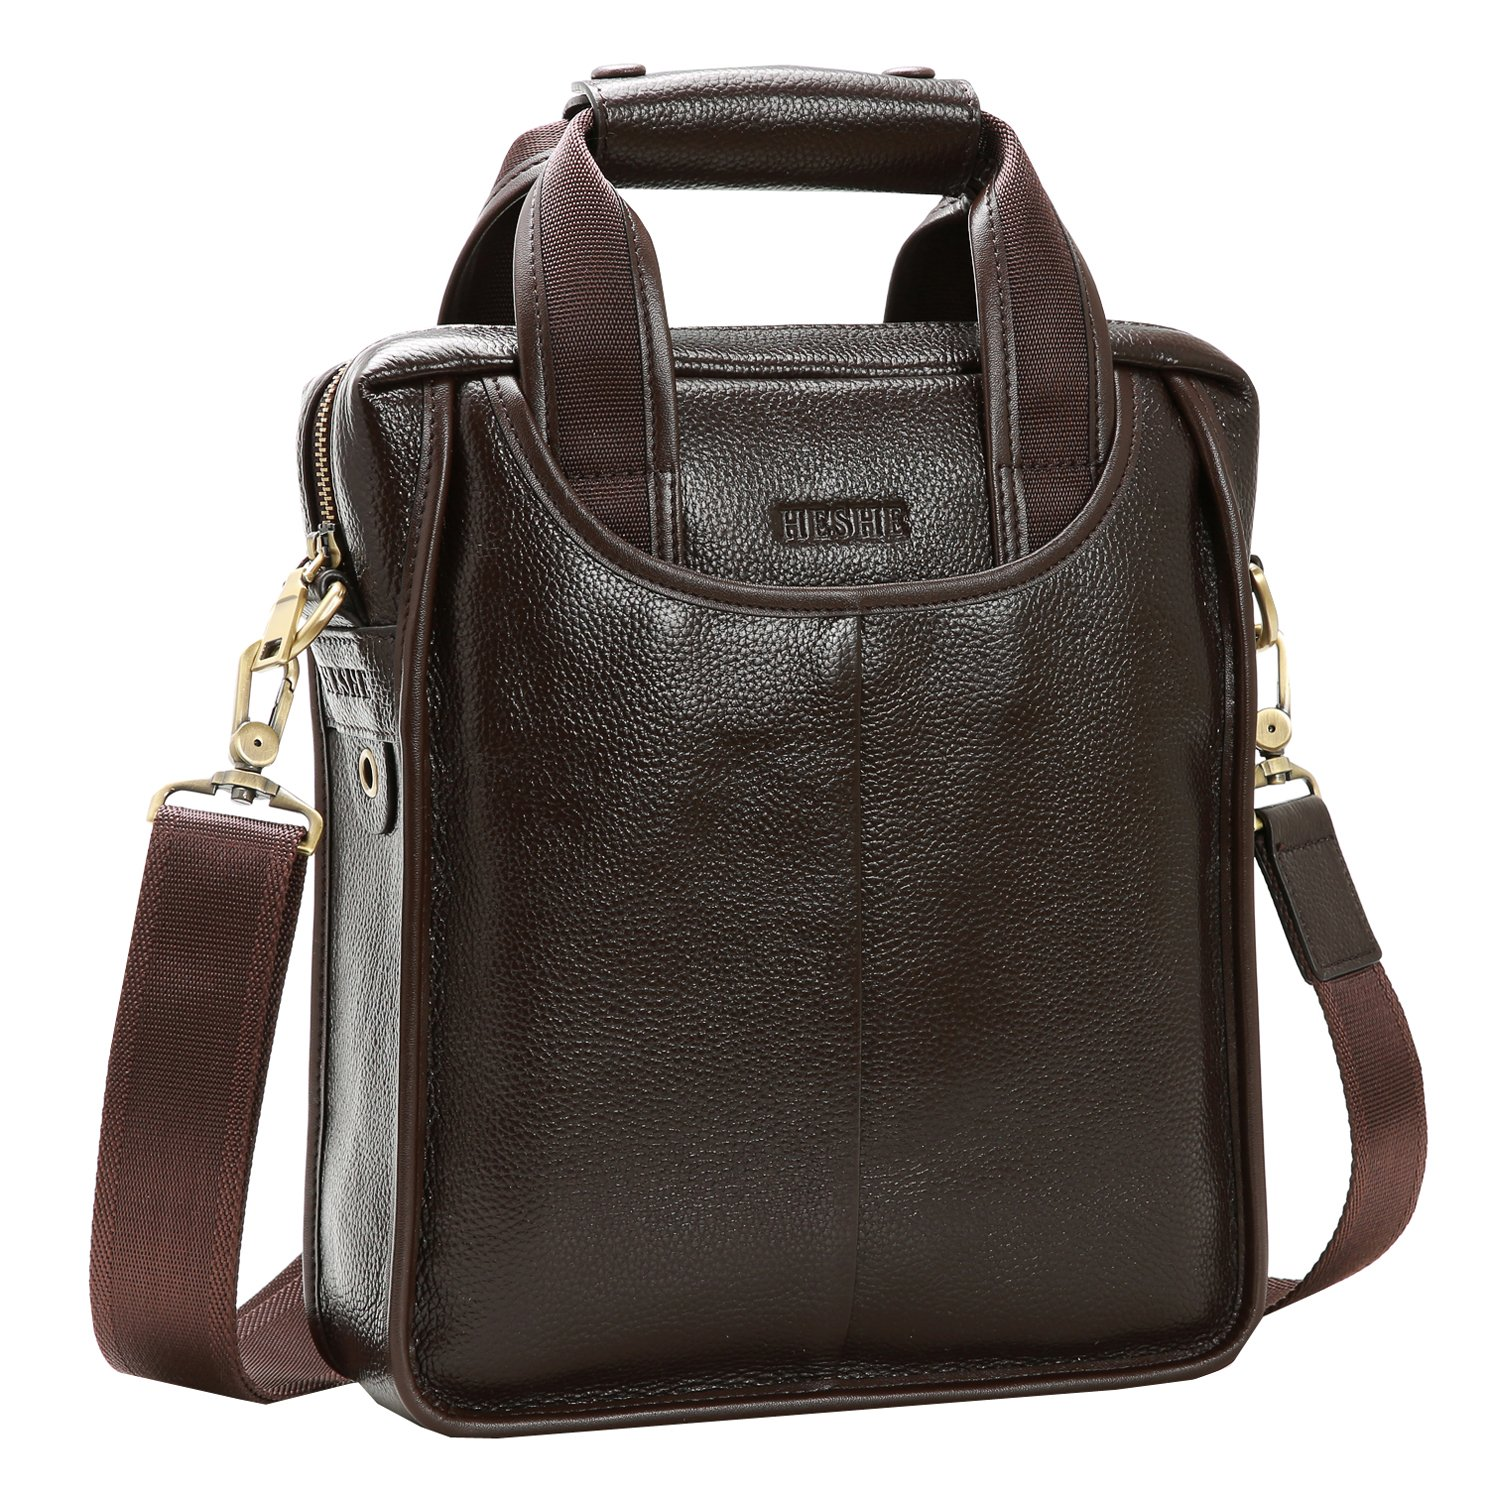 On Clearance Heshe Men's Vintage Leather Messenger Bag Briefcase Handbag Small Shoulder Bags (Coffee)